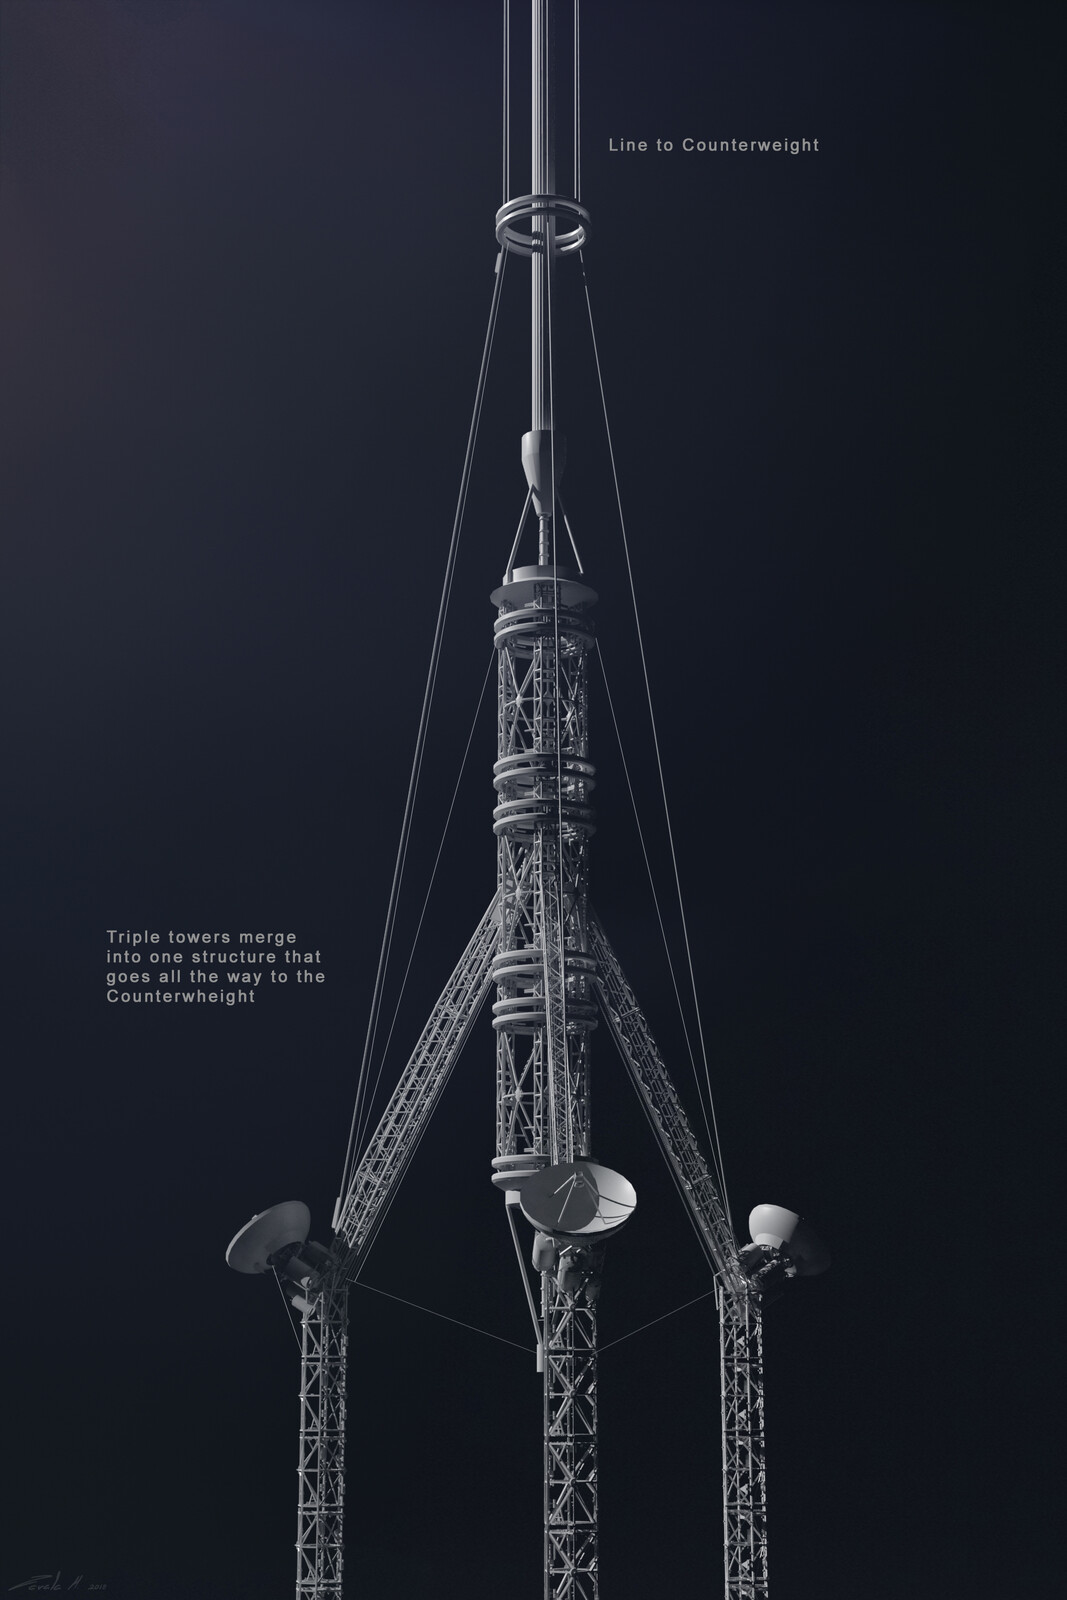 The space elevator was composed of three columns and part of the task was figuring out how to merge these into one that could then extend to a counterweight.